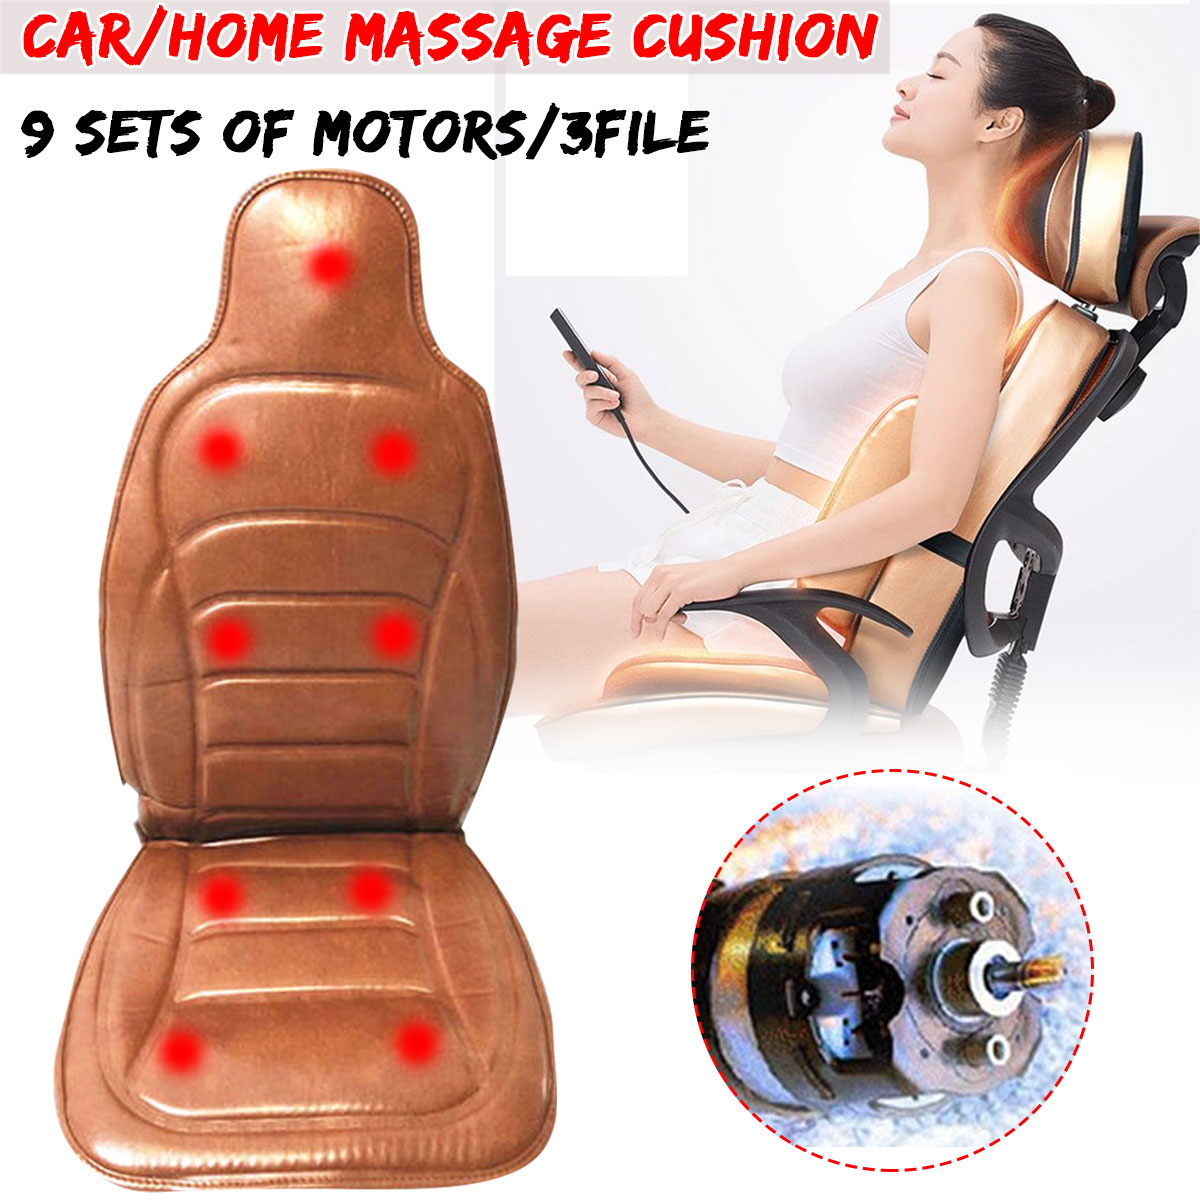 3 File Electric Body Heating Car Massage Cushion Vibration Seat Home Office Car Seat Chair Massager Lumbar Back Neck Pad Relax